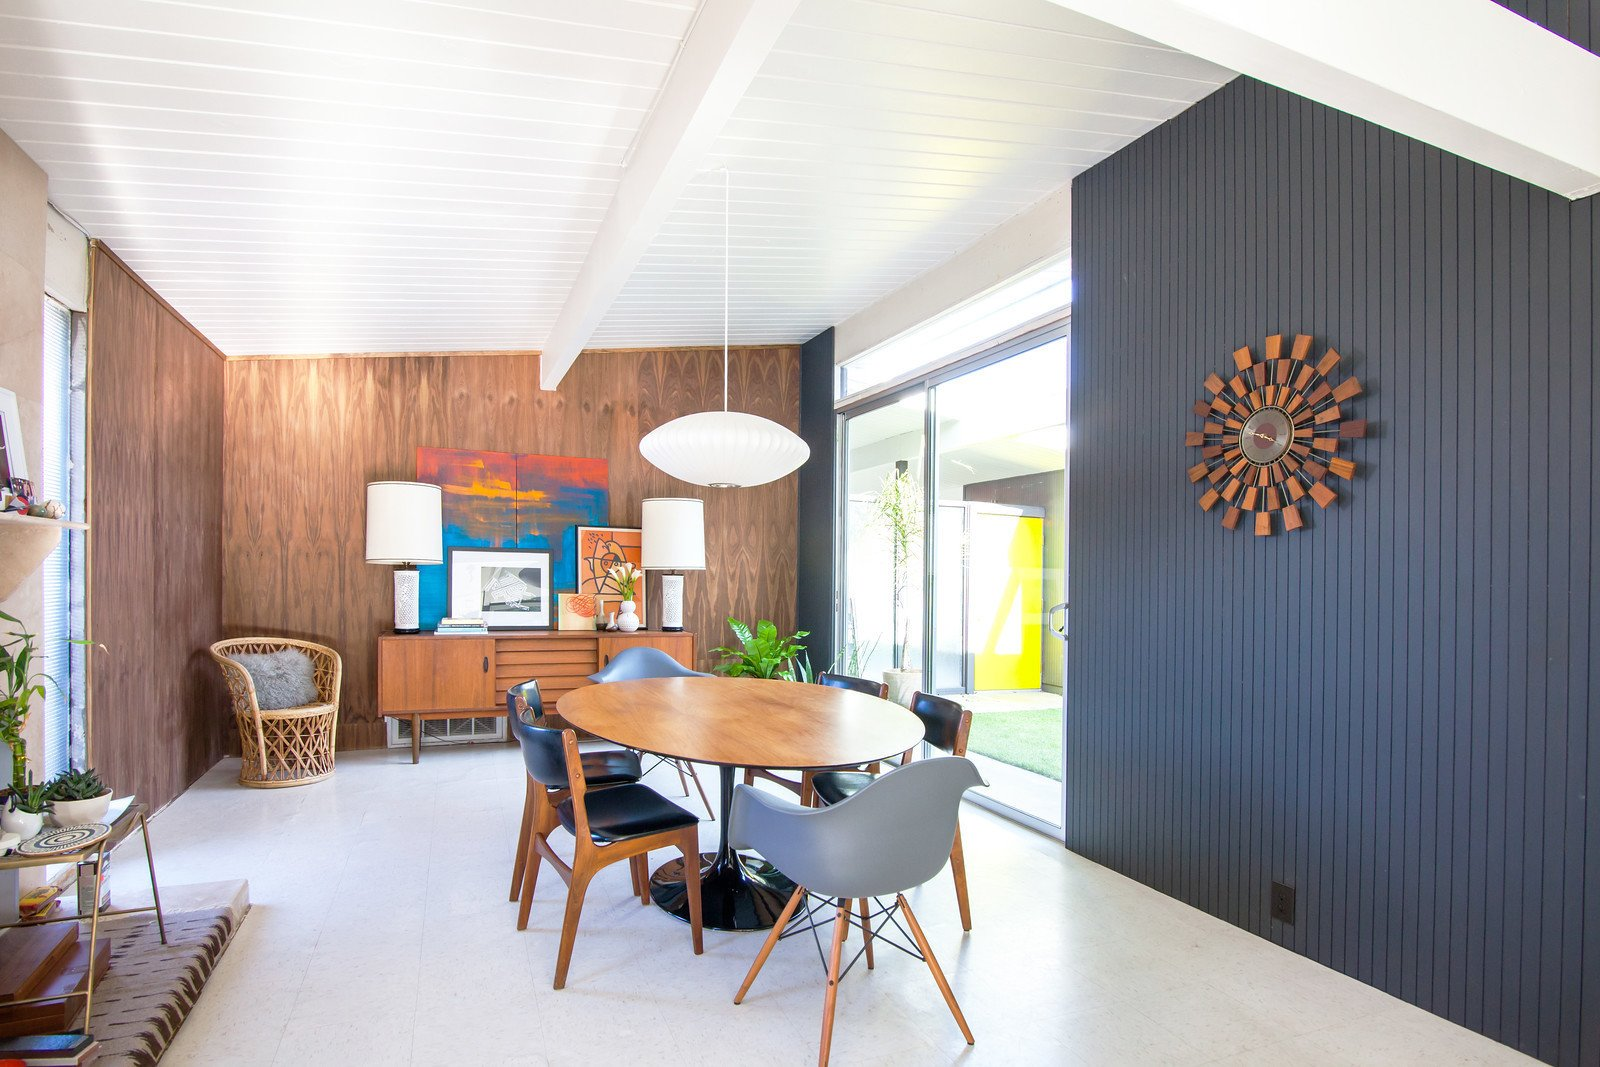 A Nelson Saucer Pendant Lamp by George Nelson hangs over the dining table with Eames Molded Plastic armchairs to compliment the surrounding set of chairs.